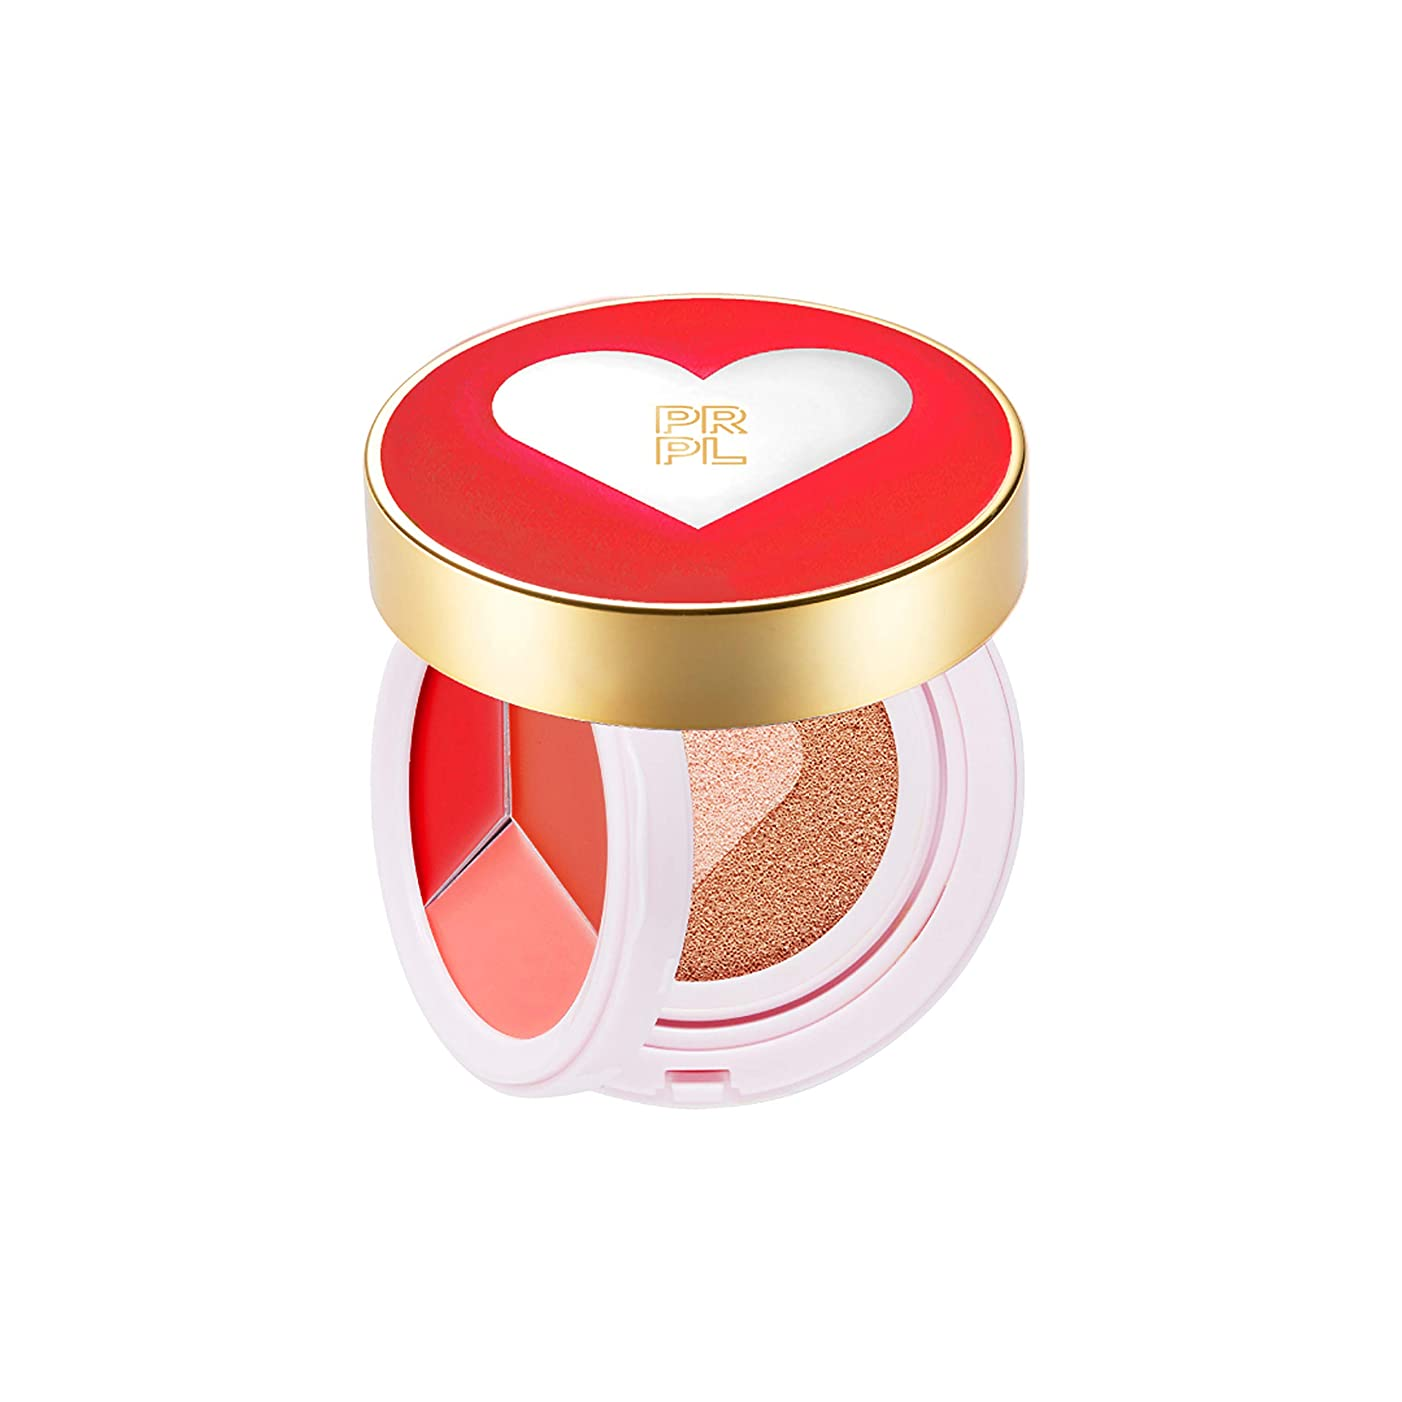 入り口不屈賞賛PRPL Kiss and Heart Double Cushion (Red Edition) #21 Pure Ivory - Korean Make-up, Cushion Foundation, Korean Beauty, Lip and Cheek, Dual Cushion